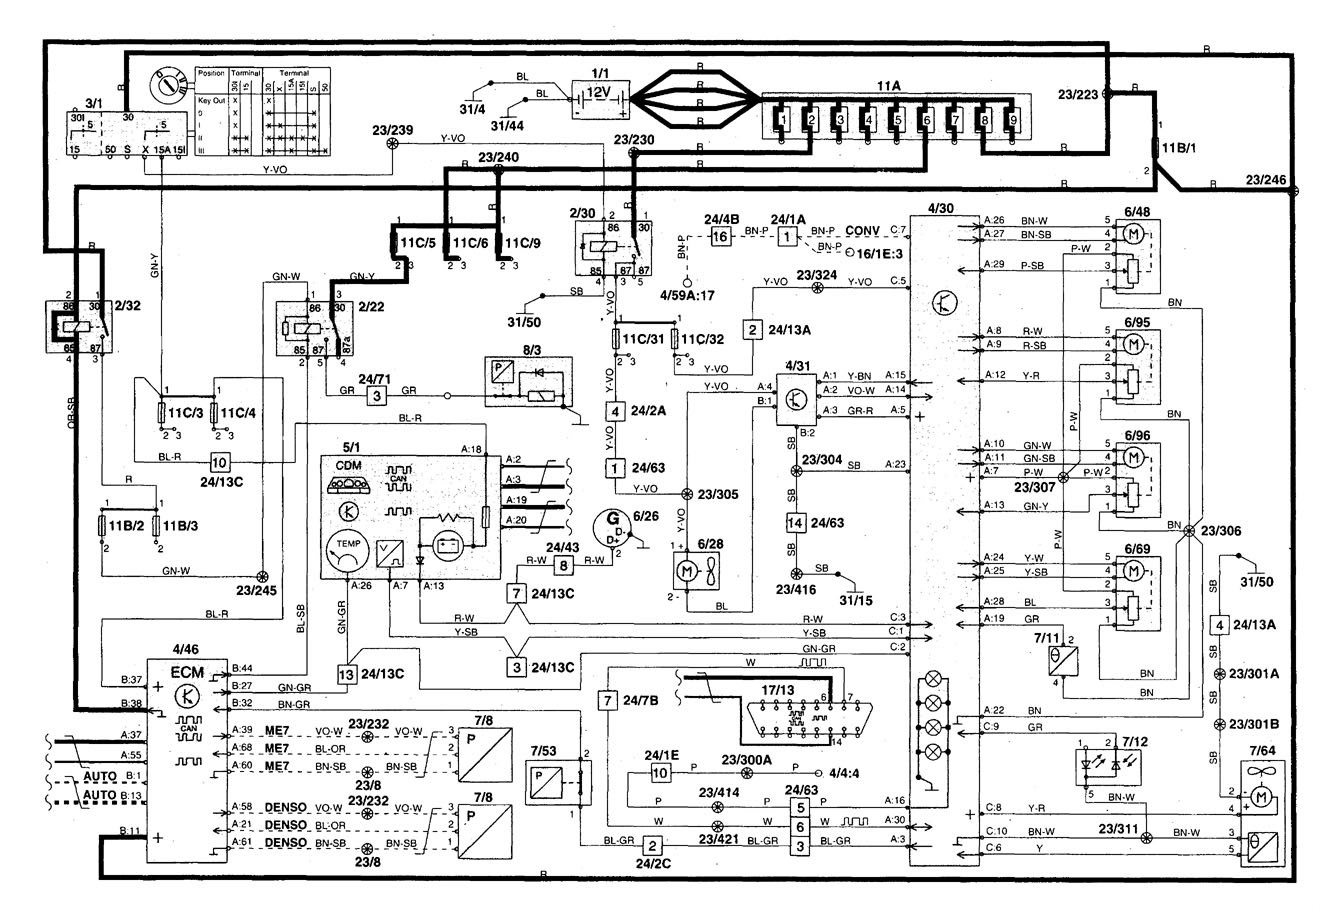 hight resolution of wiring schematic for 1998 volvo s70 heating syste wiring diagram1998 volvo s70 ac wiring diagram wiring